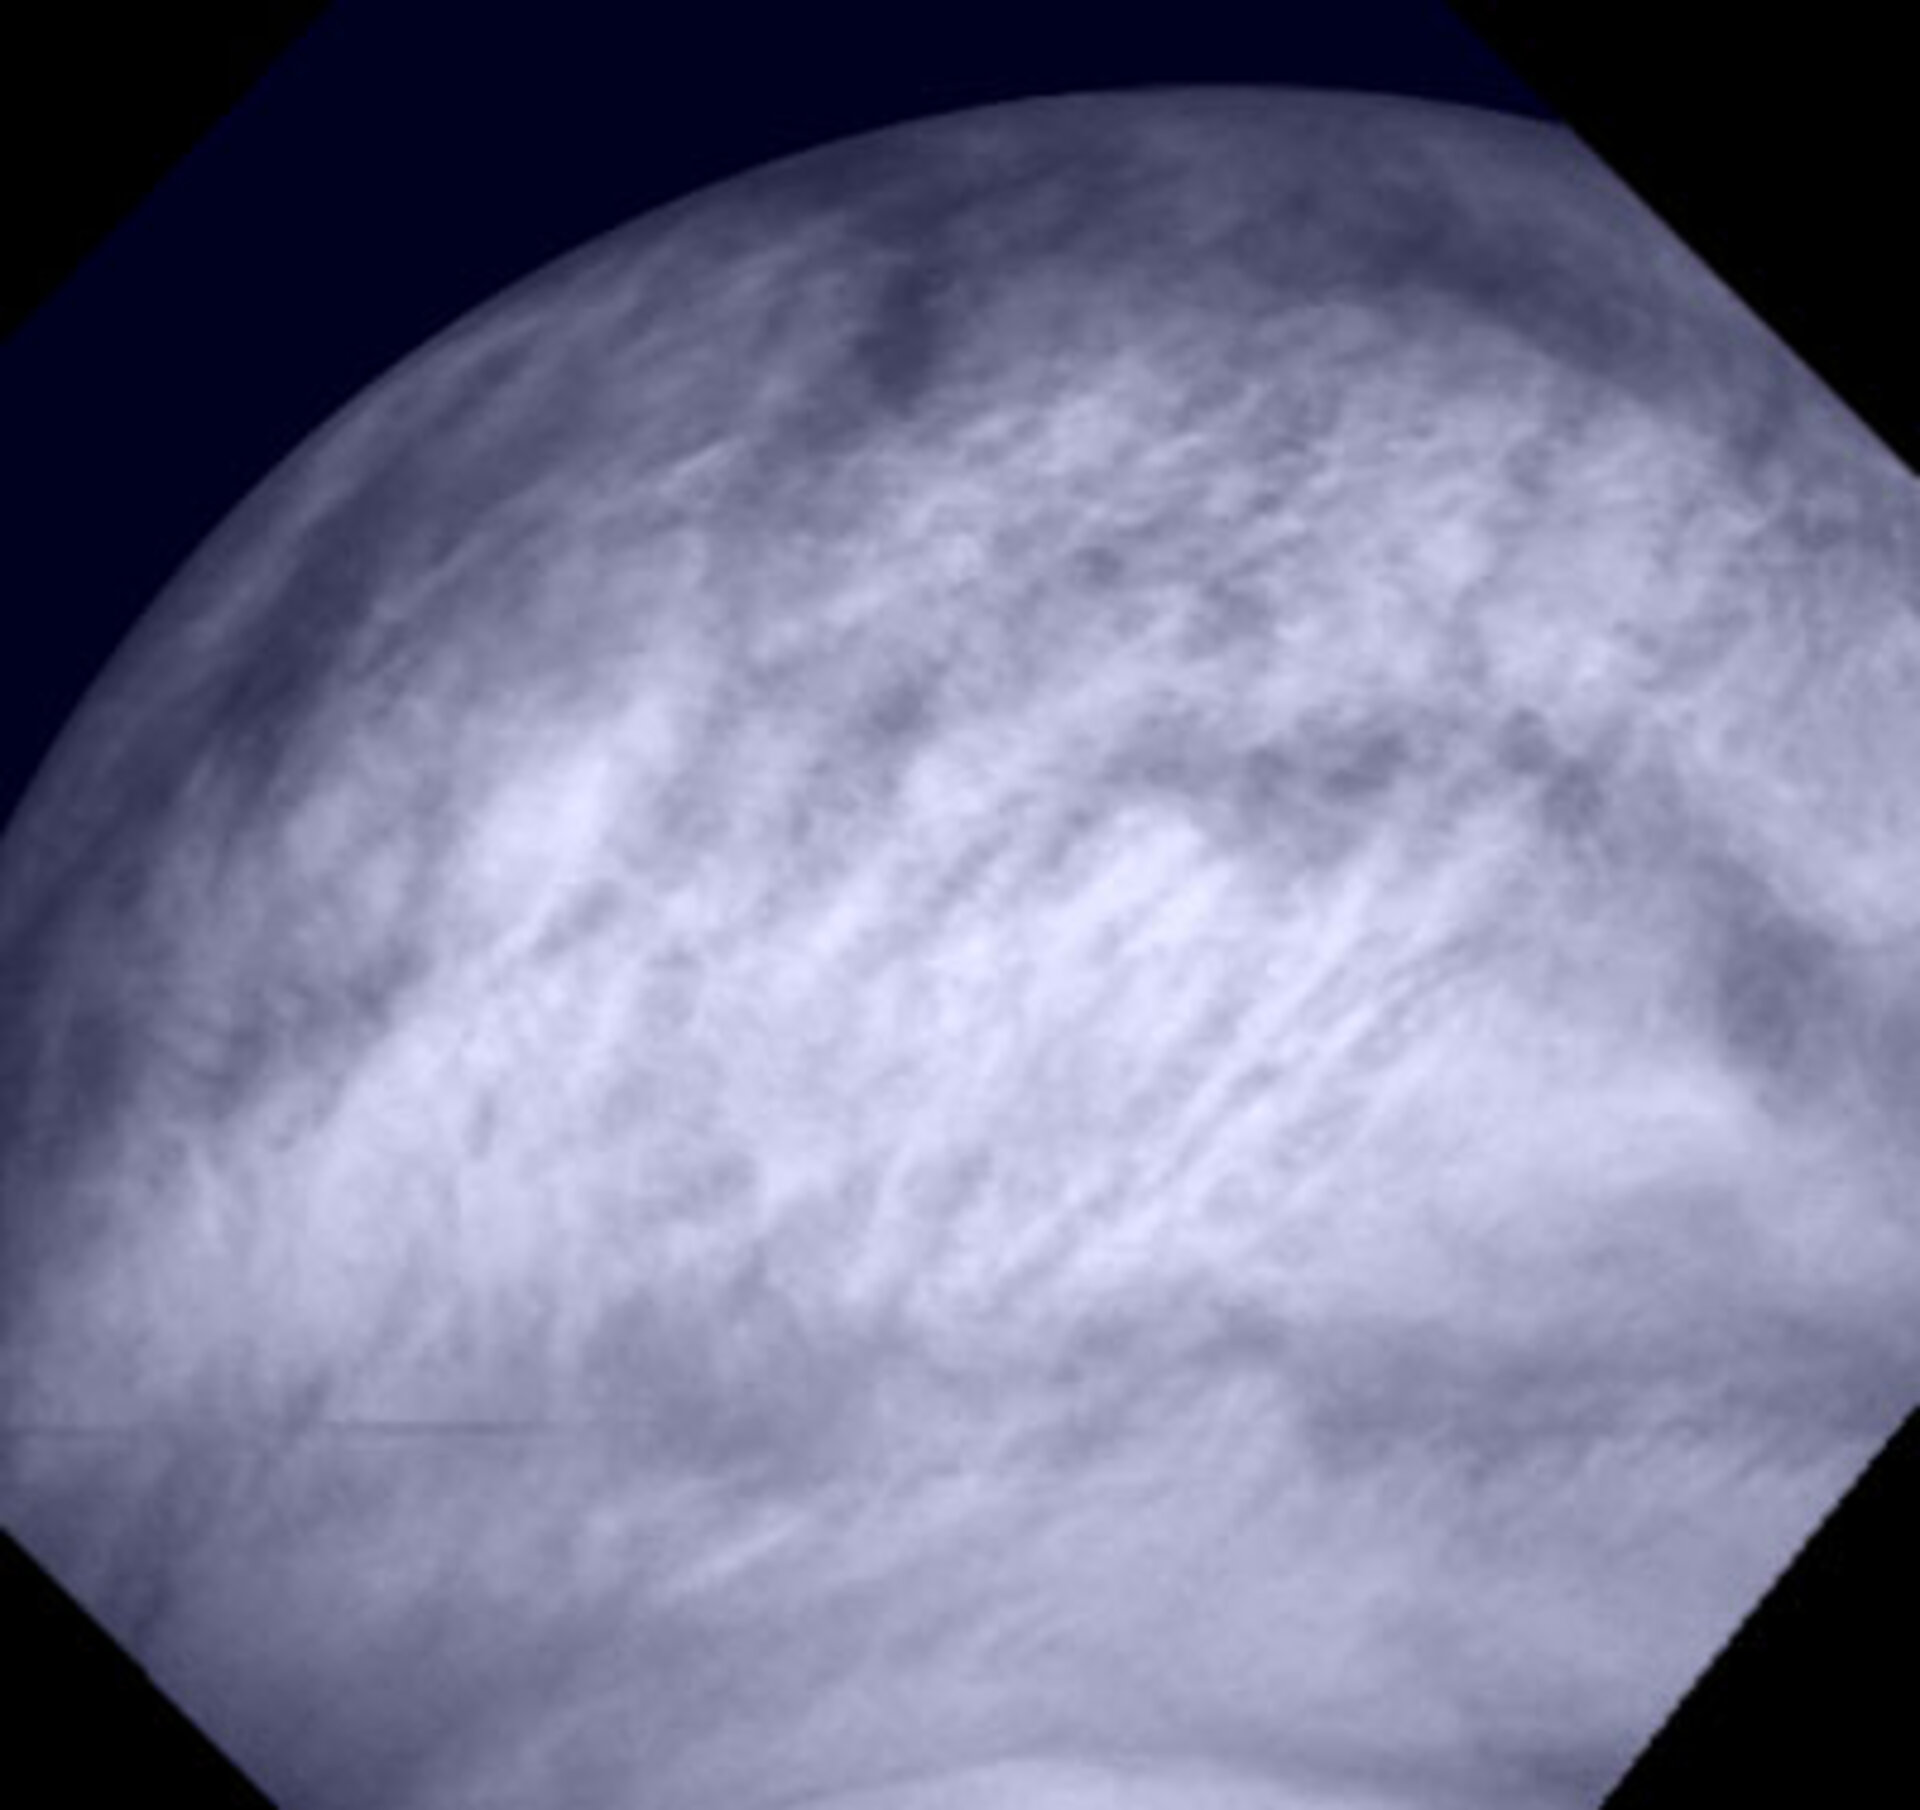 Cloud structures at Venus' low latitudes